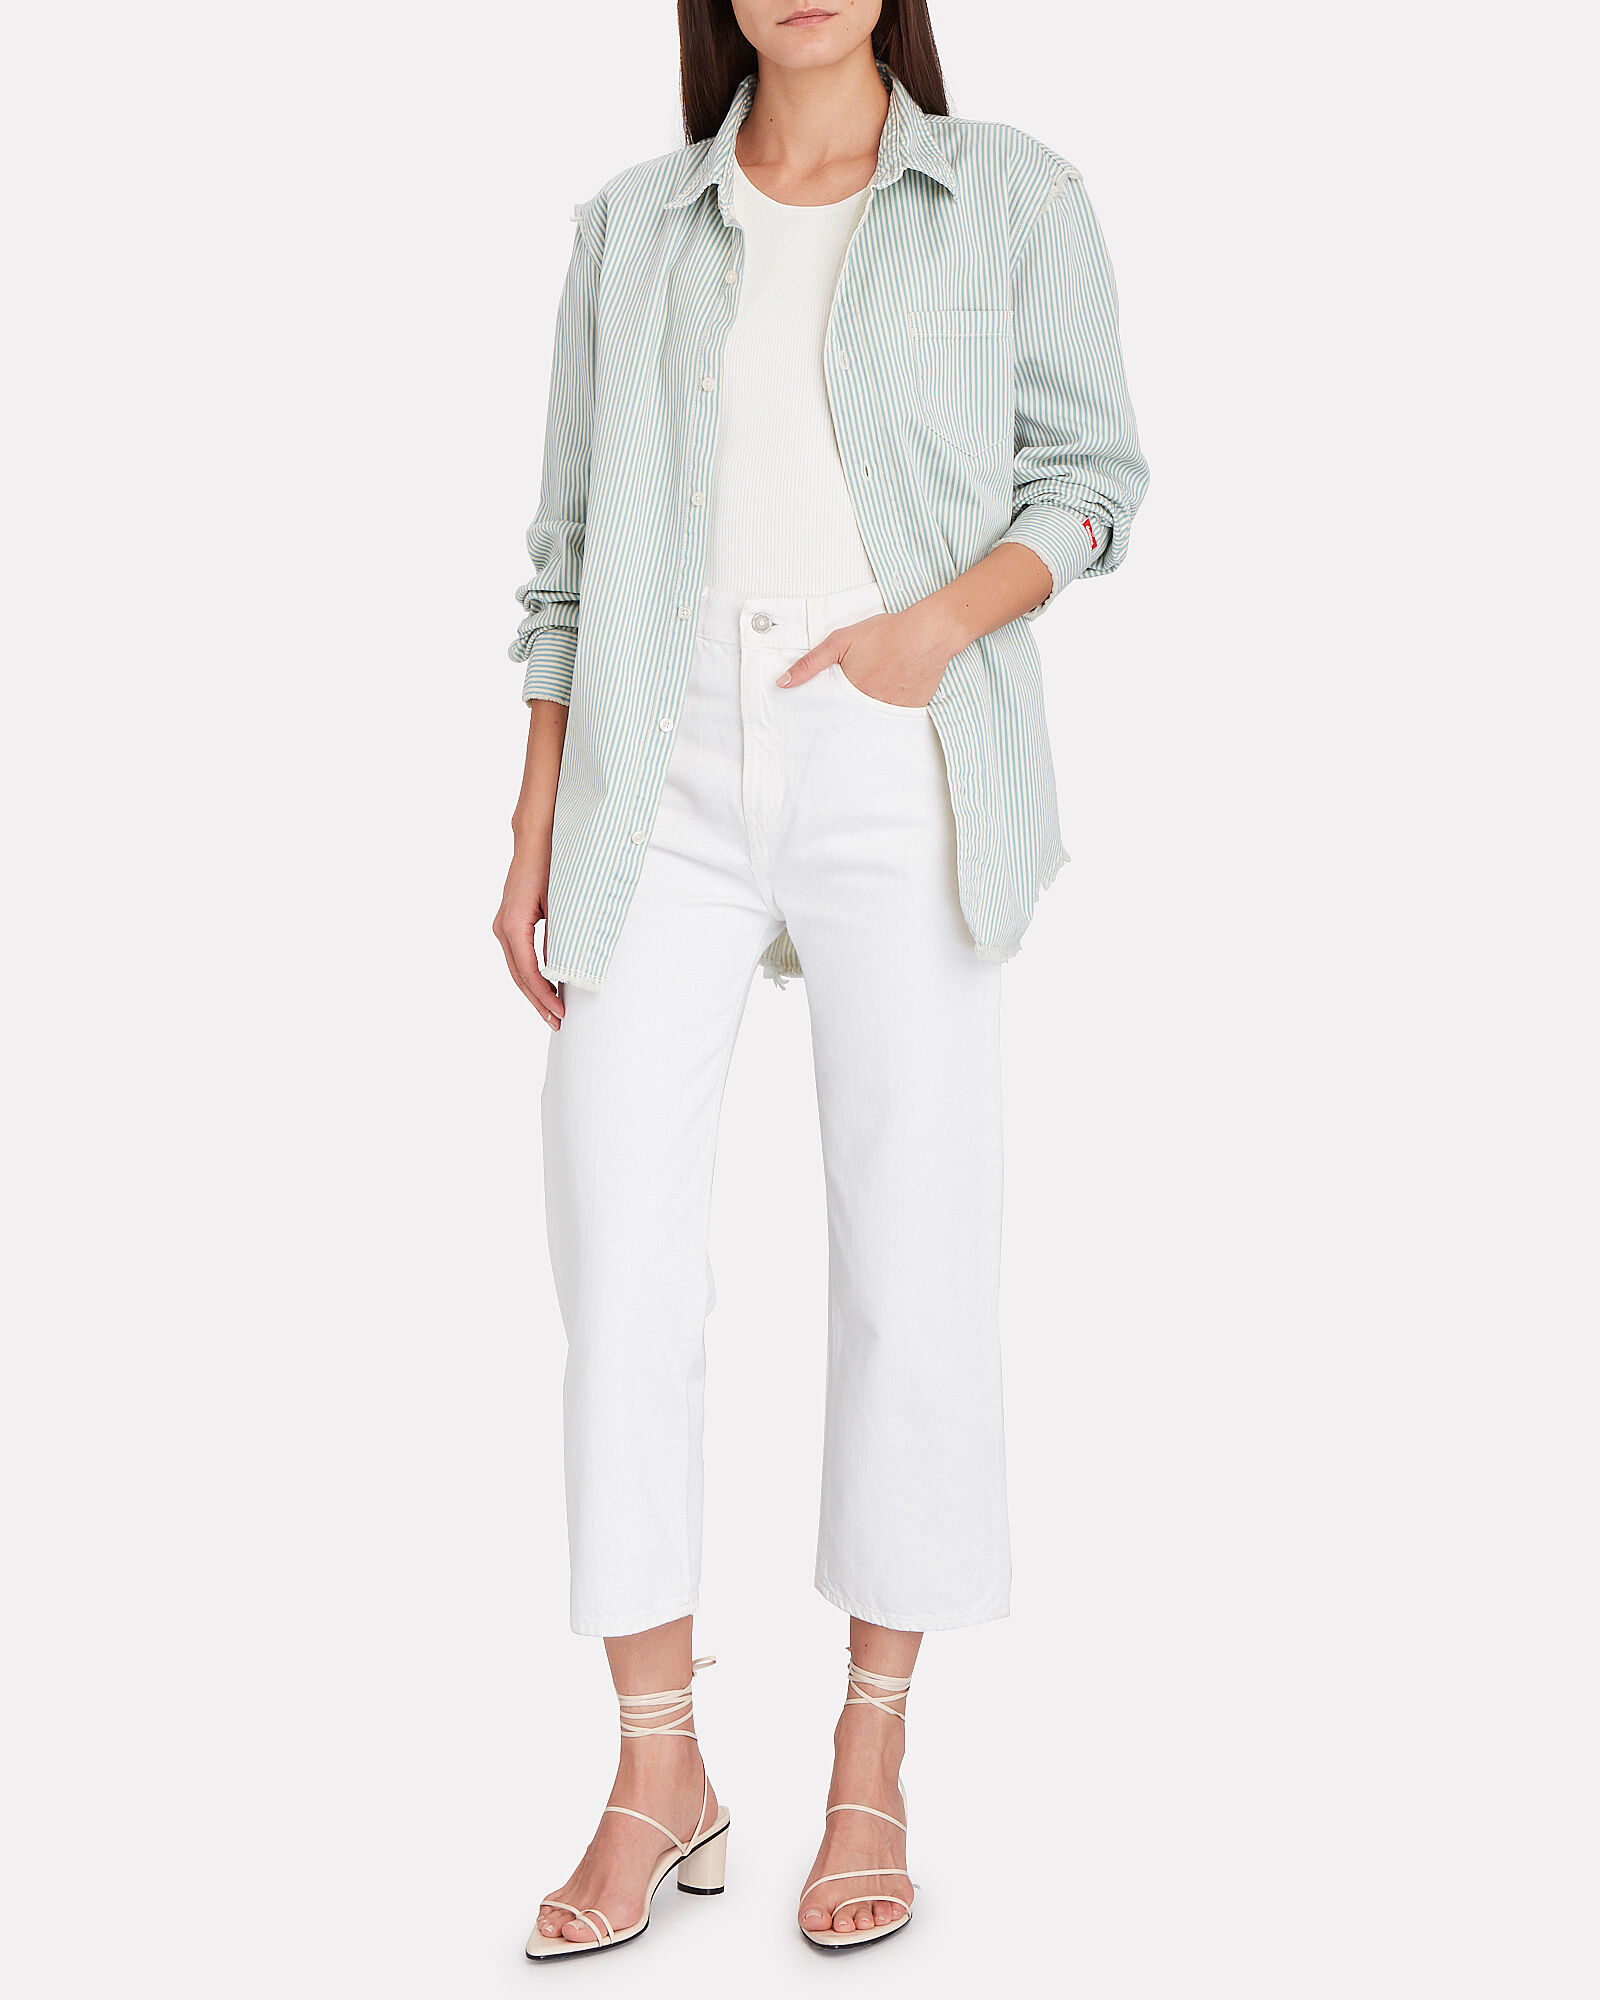 Pierce Cropped High-Rise Jeans, WHITE, hi-res